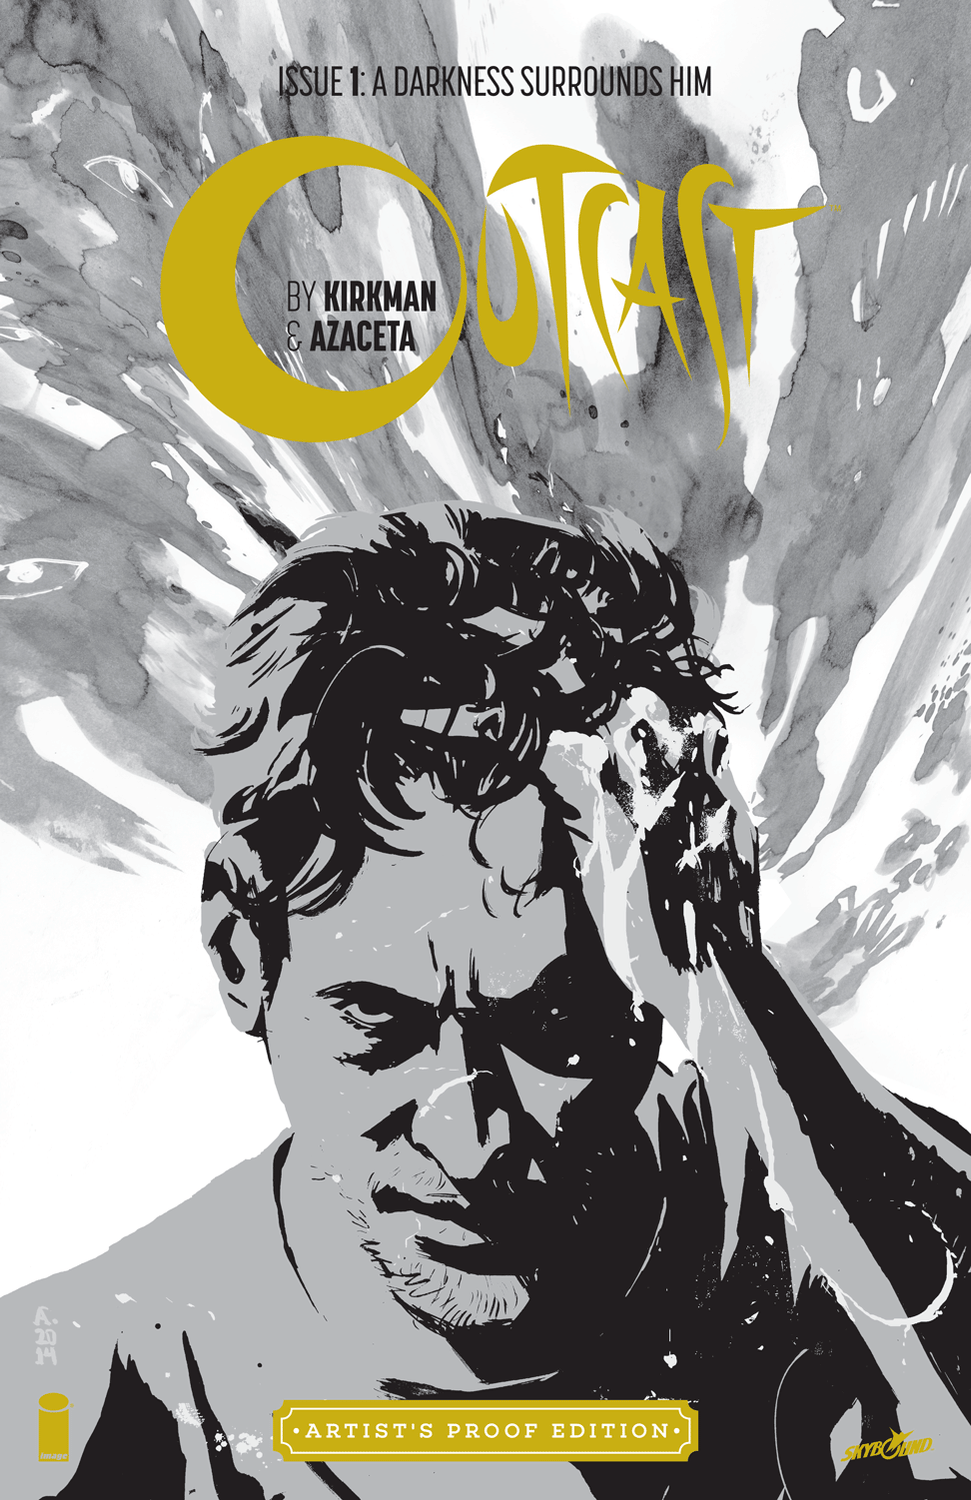 Image Giant-Sized Artist's Proof Edition: Outcast By Kirkman & Azaceta #1